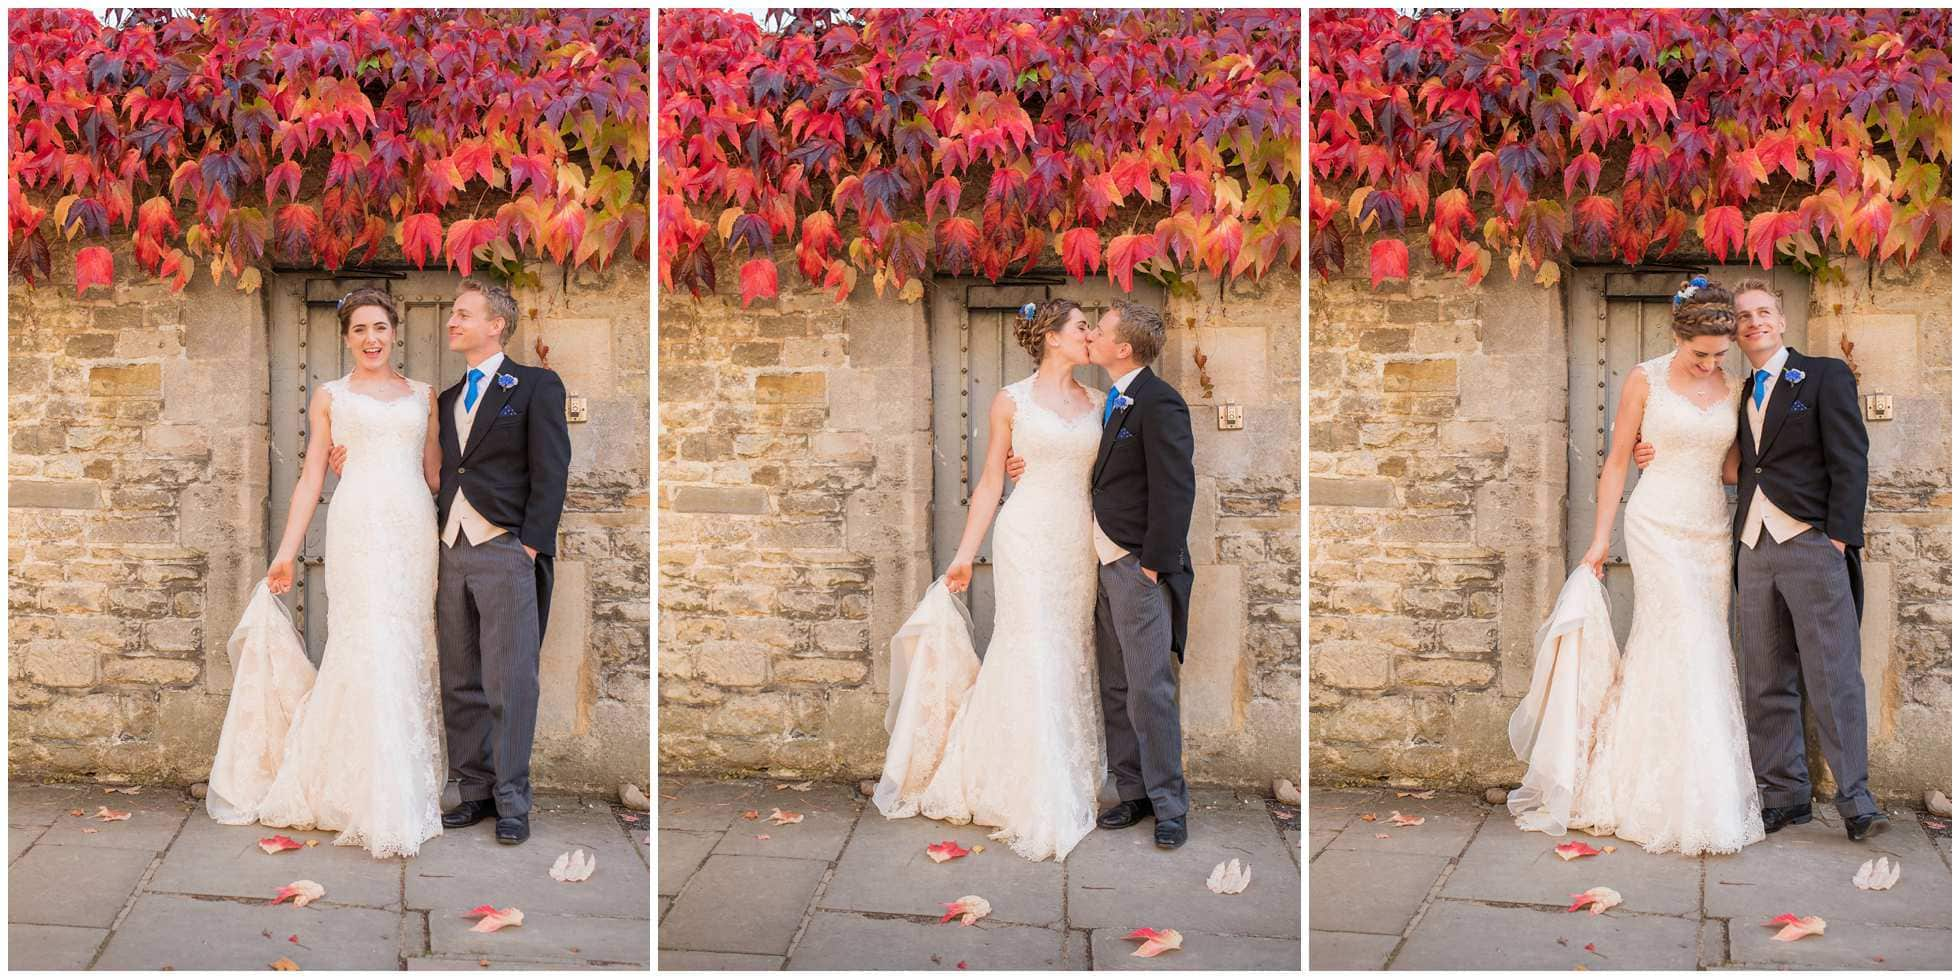 Oxford University Wedding Photography on the streets of Oxford